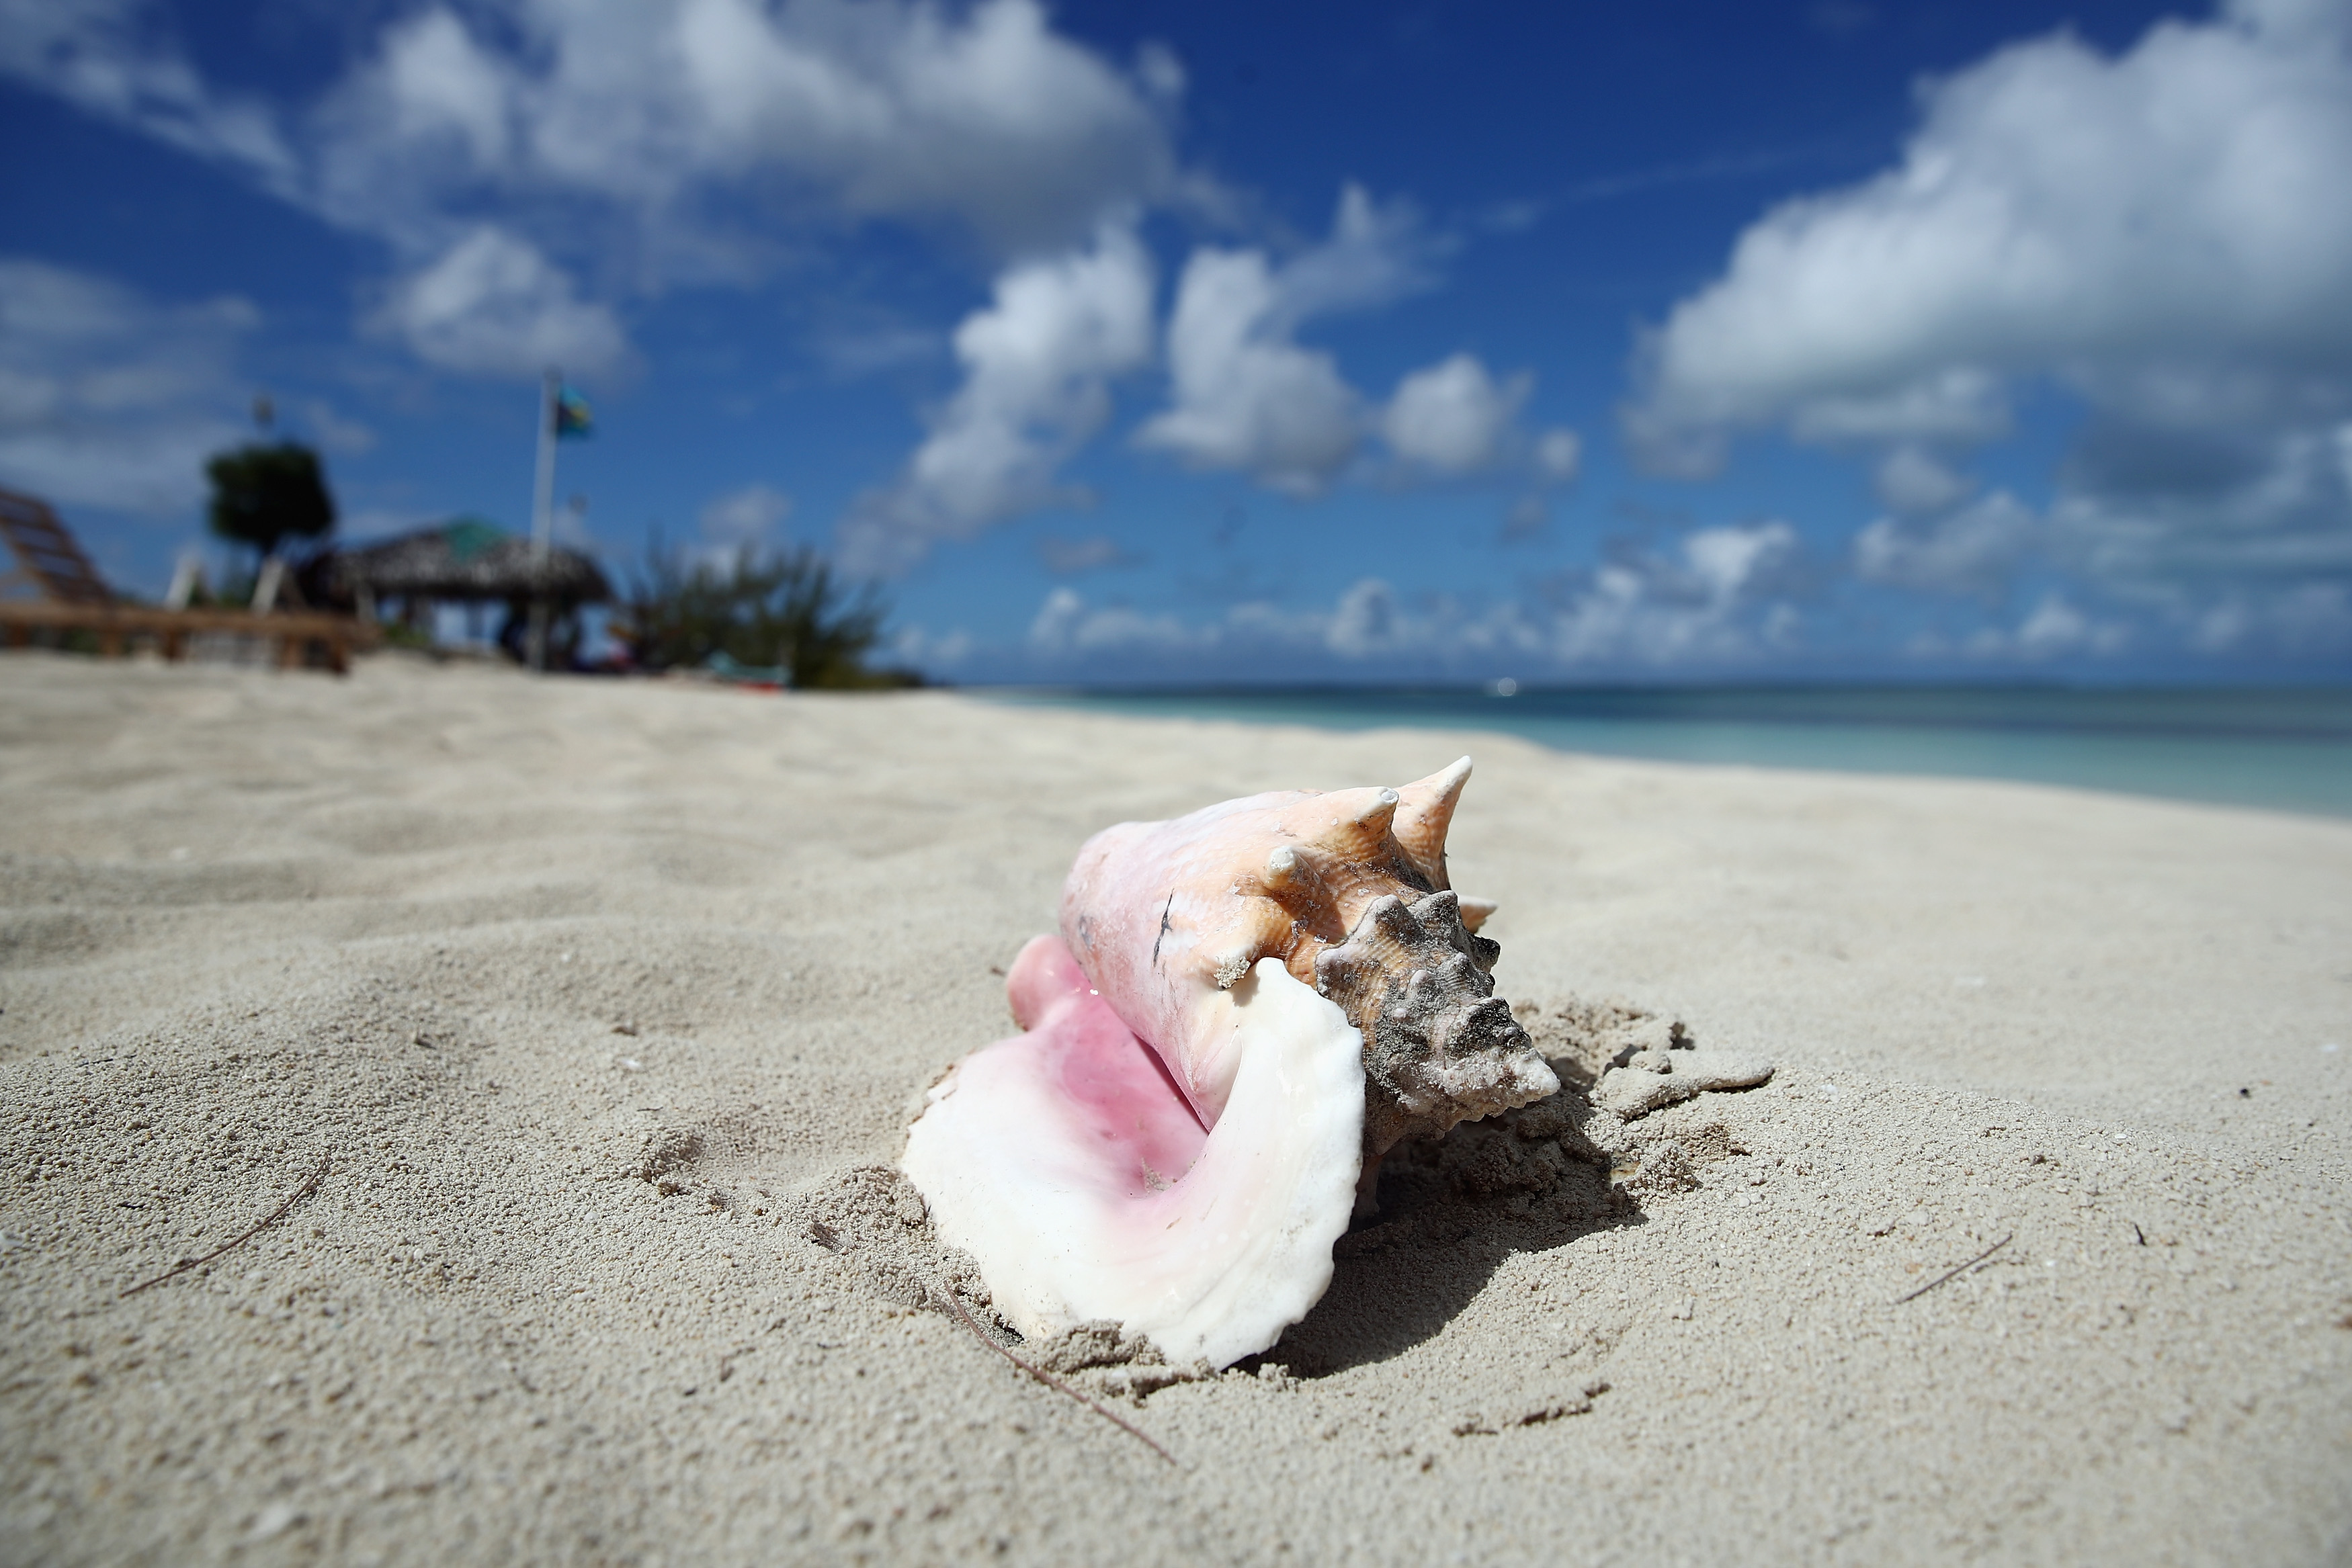 A shell lies on a white sand beach in this glamour shot of the Bahamas